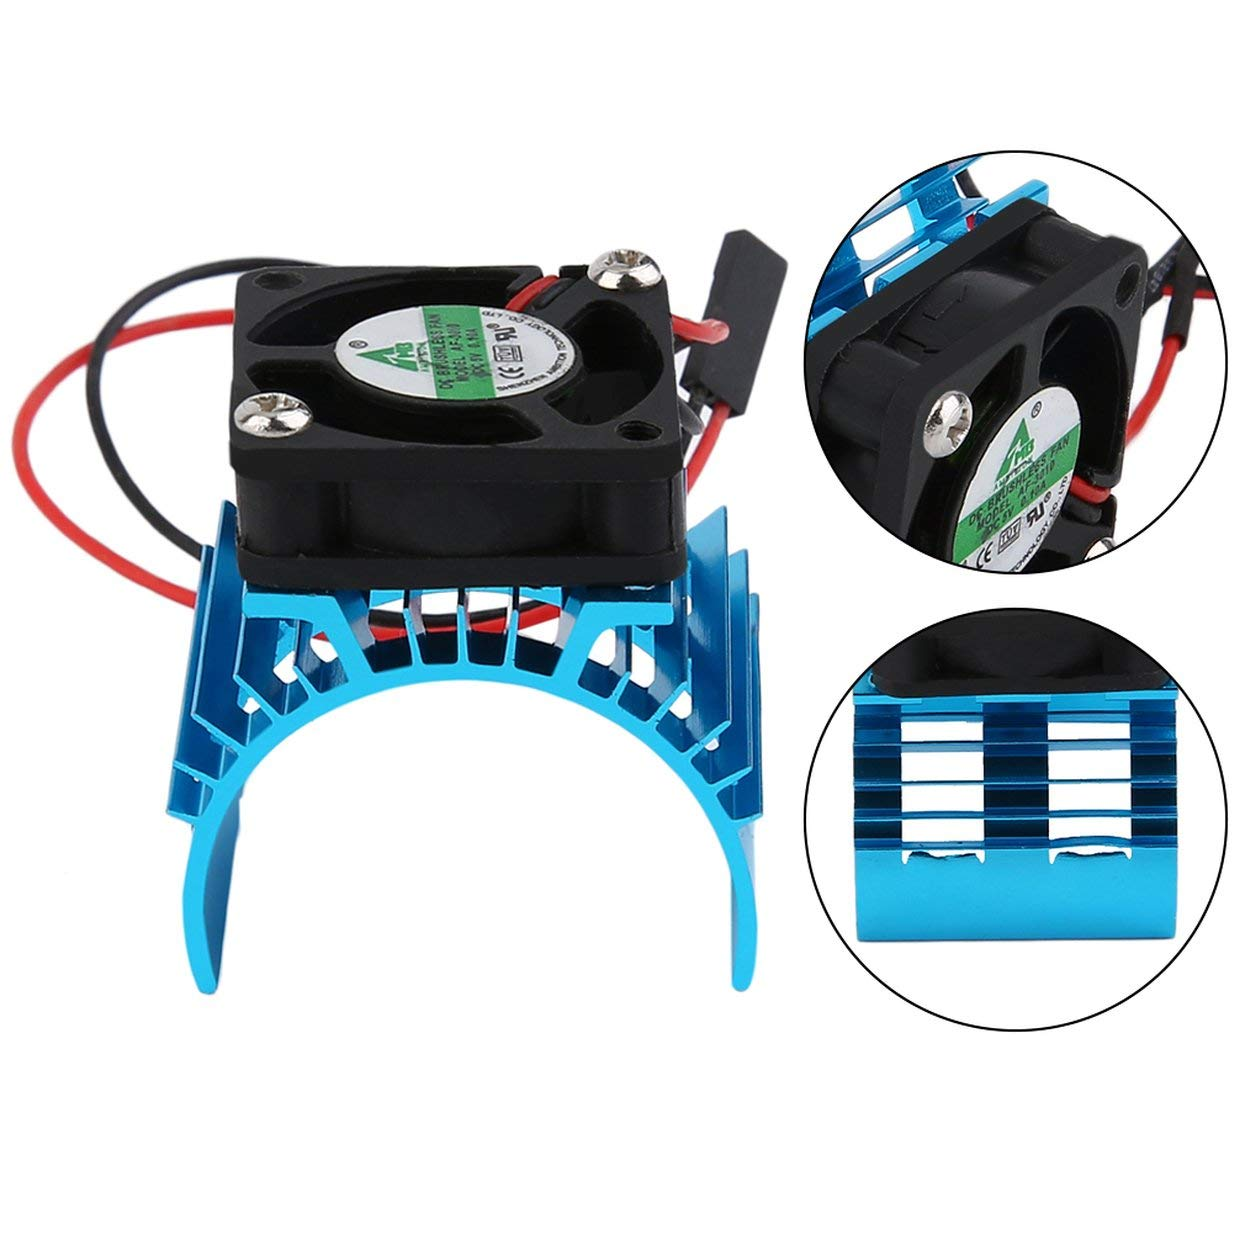 Detectorcatty Durable Brushless Heatsink Radiator and Fan Cooling Aluminum 550 540 3650 Size Sink Cover Electric Engine for RC HSP Model